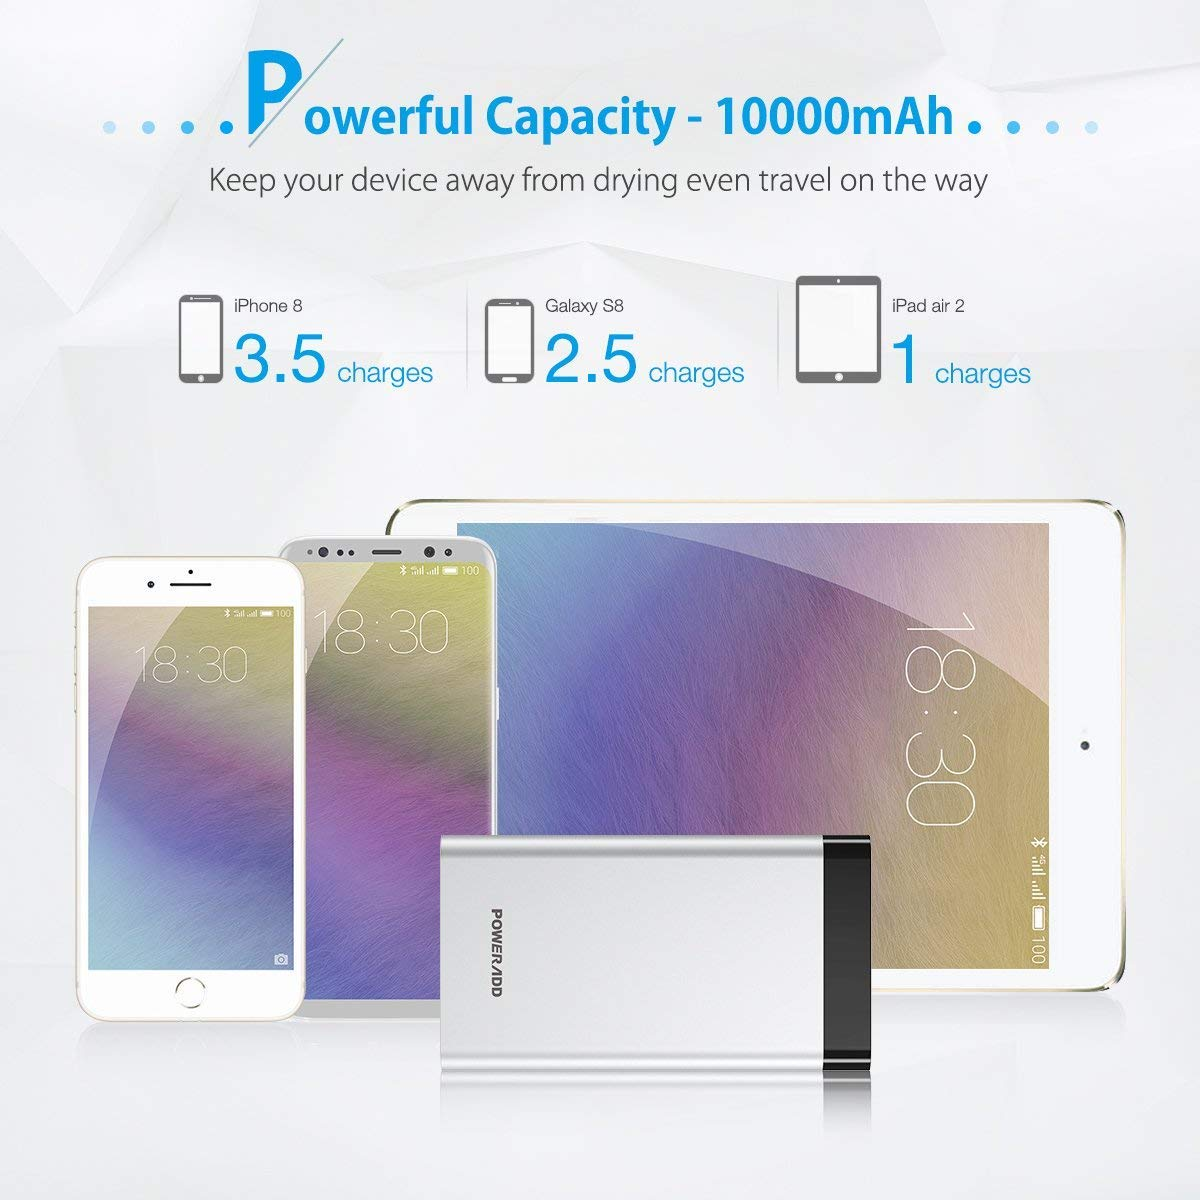 Digital LED Display, Poweradd Virgo 10000mAh Power Bank (USB-C Input & Output 5V/3A) Portable Charger for iPhone X, Samsung Galaxy, Nexus and More - Silver